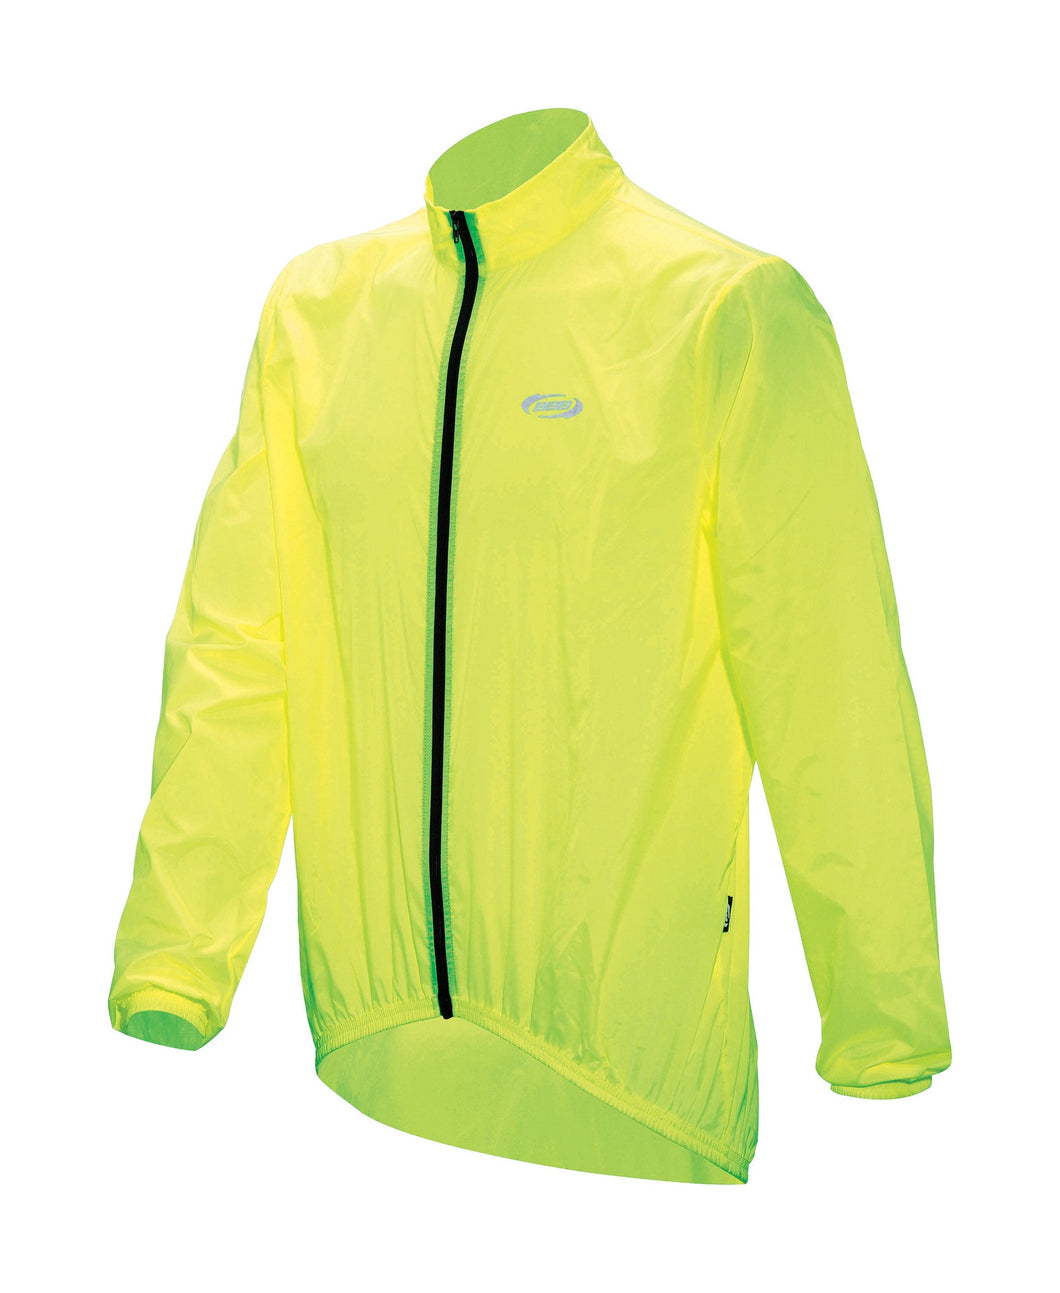 BaseShield Rainjacket (Neon Yellow, M)